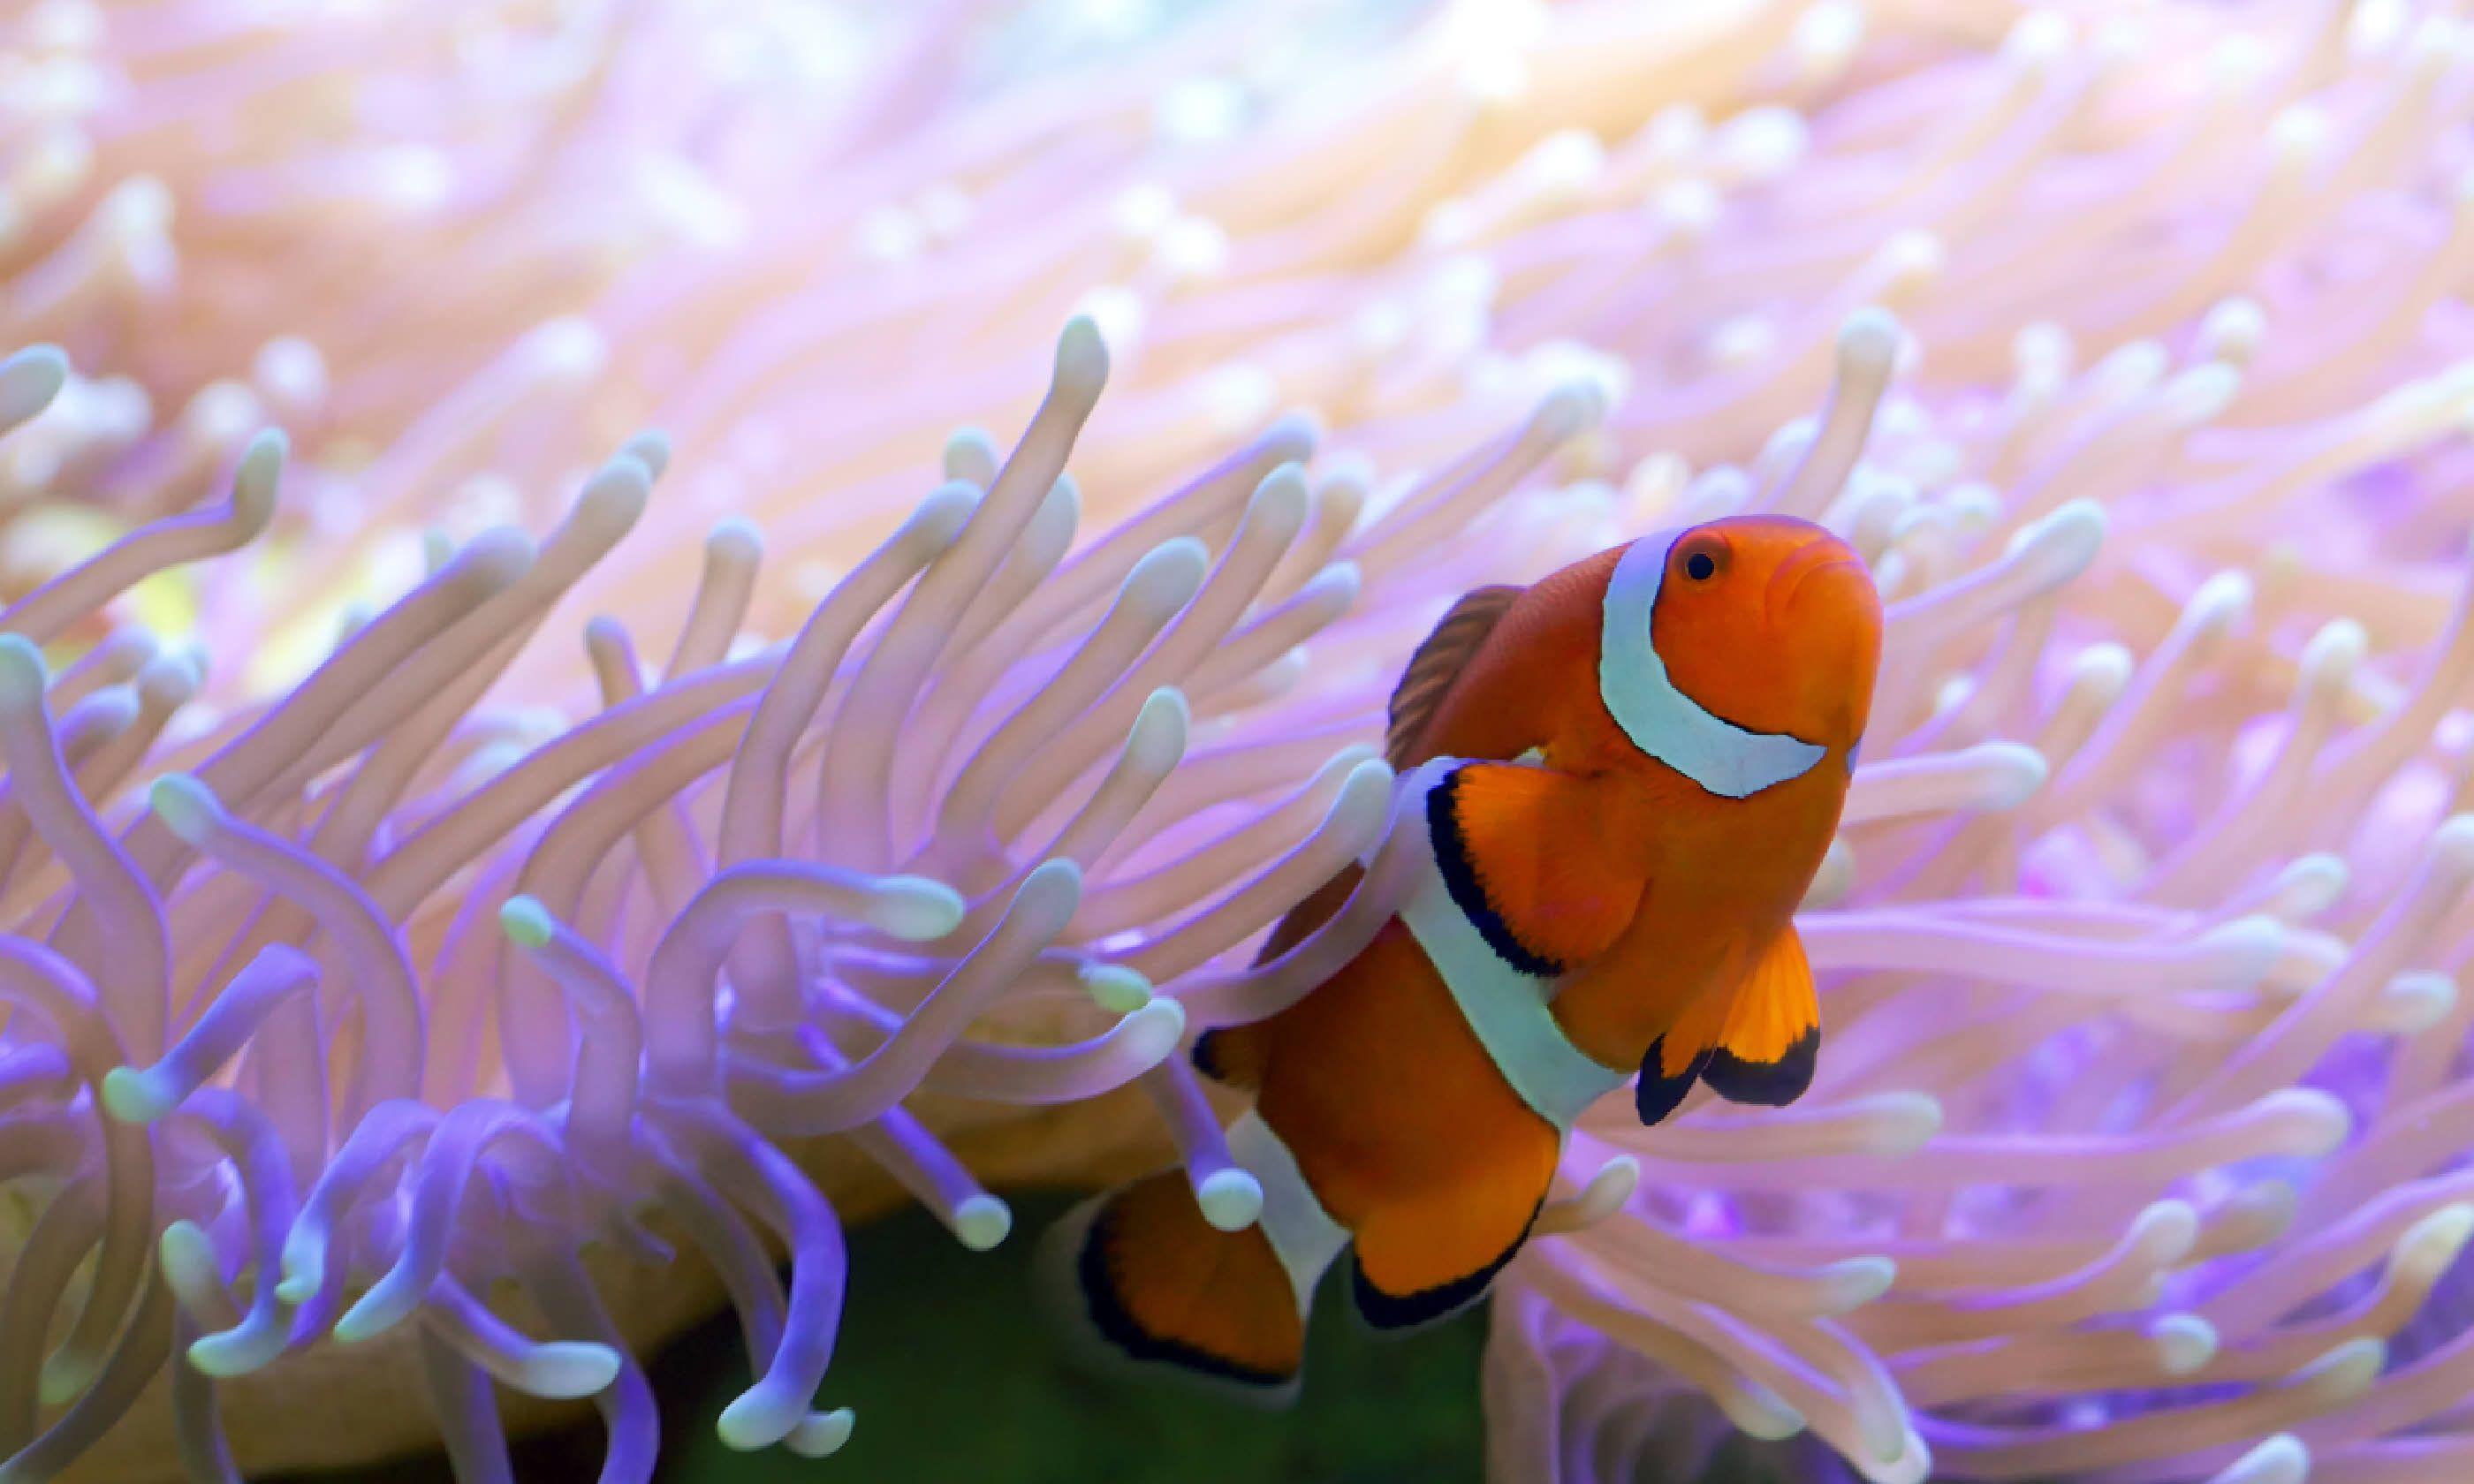 Clown fish hiding in colorful anemone (Shutterstock)